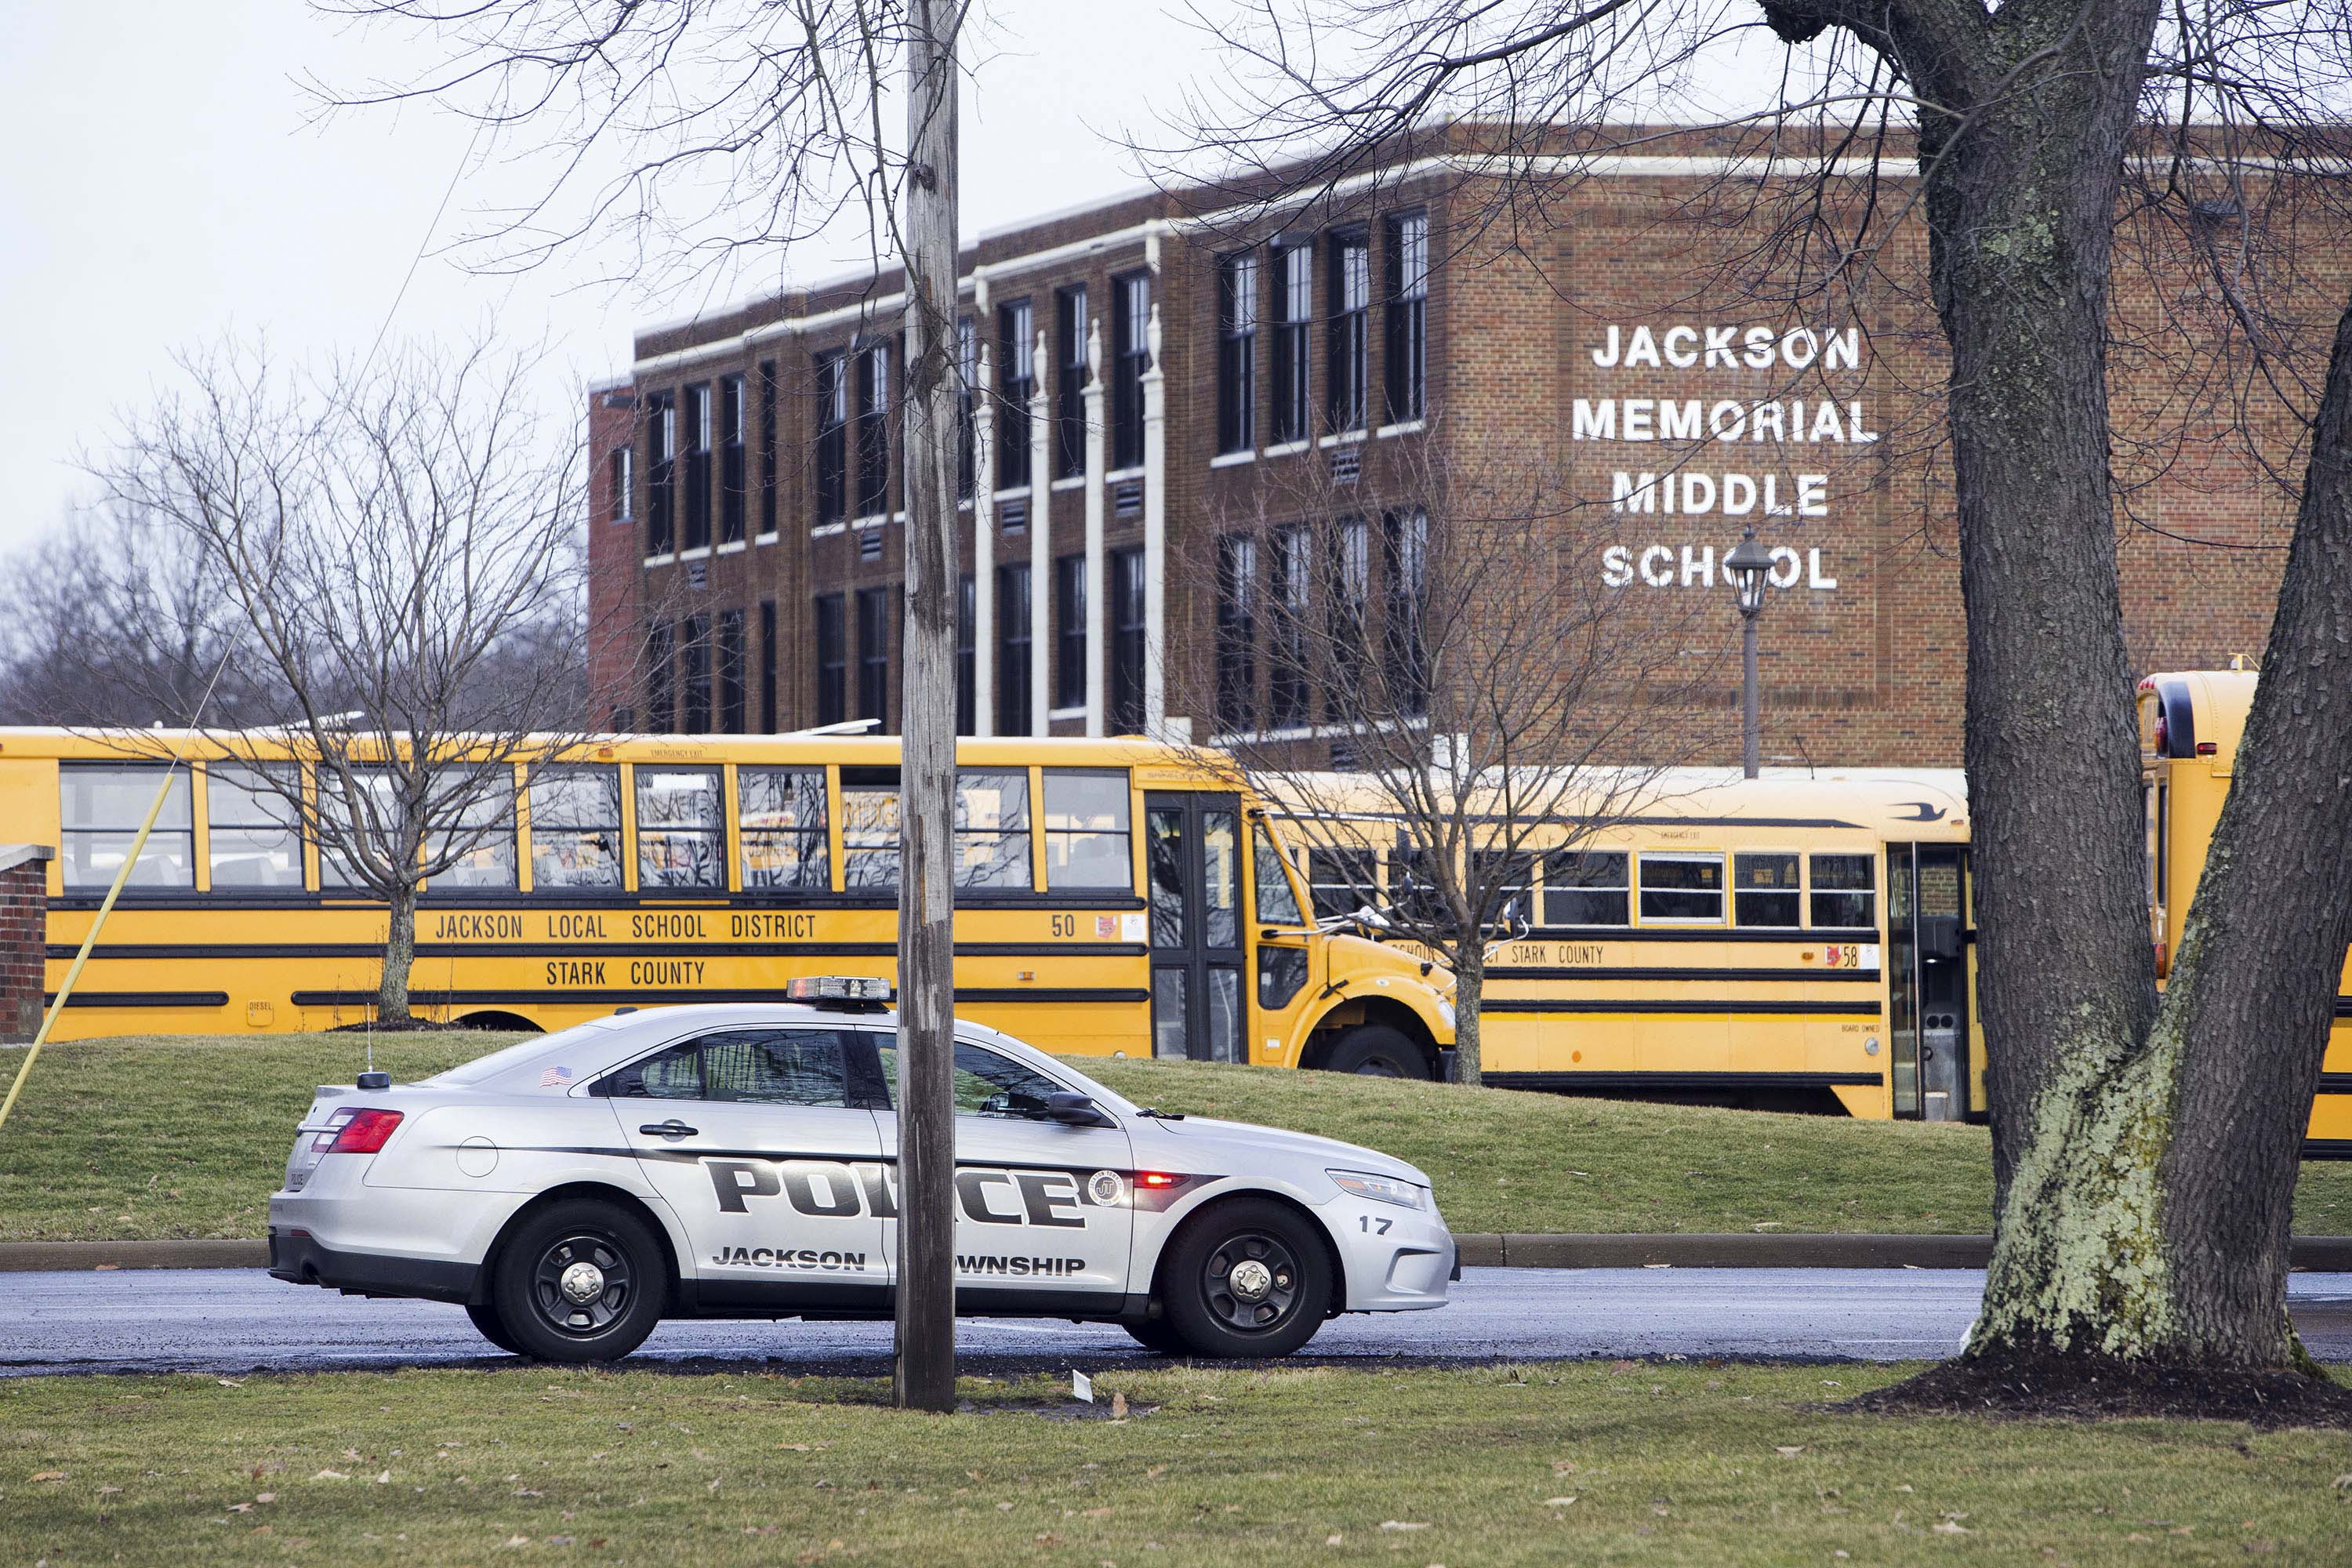 Ohio student shoots wounds self after bringing gun to school – Las